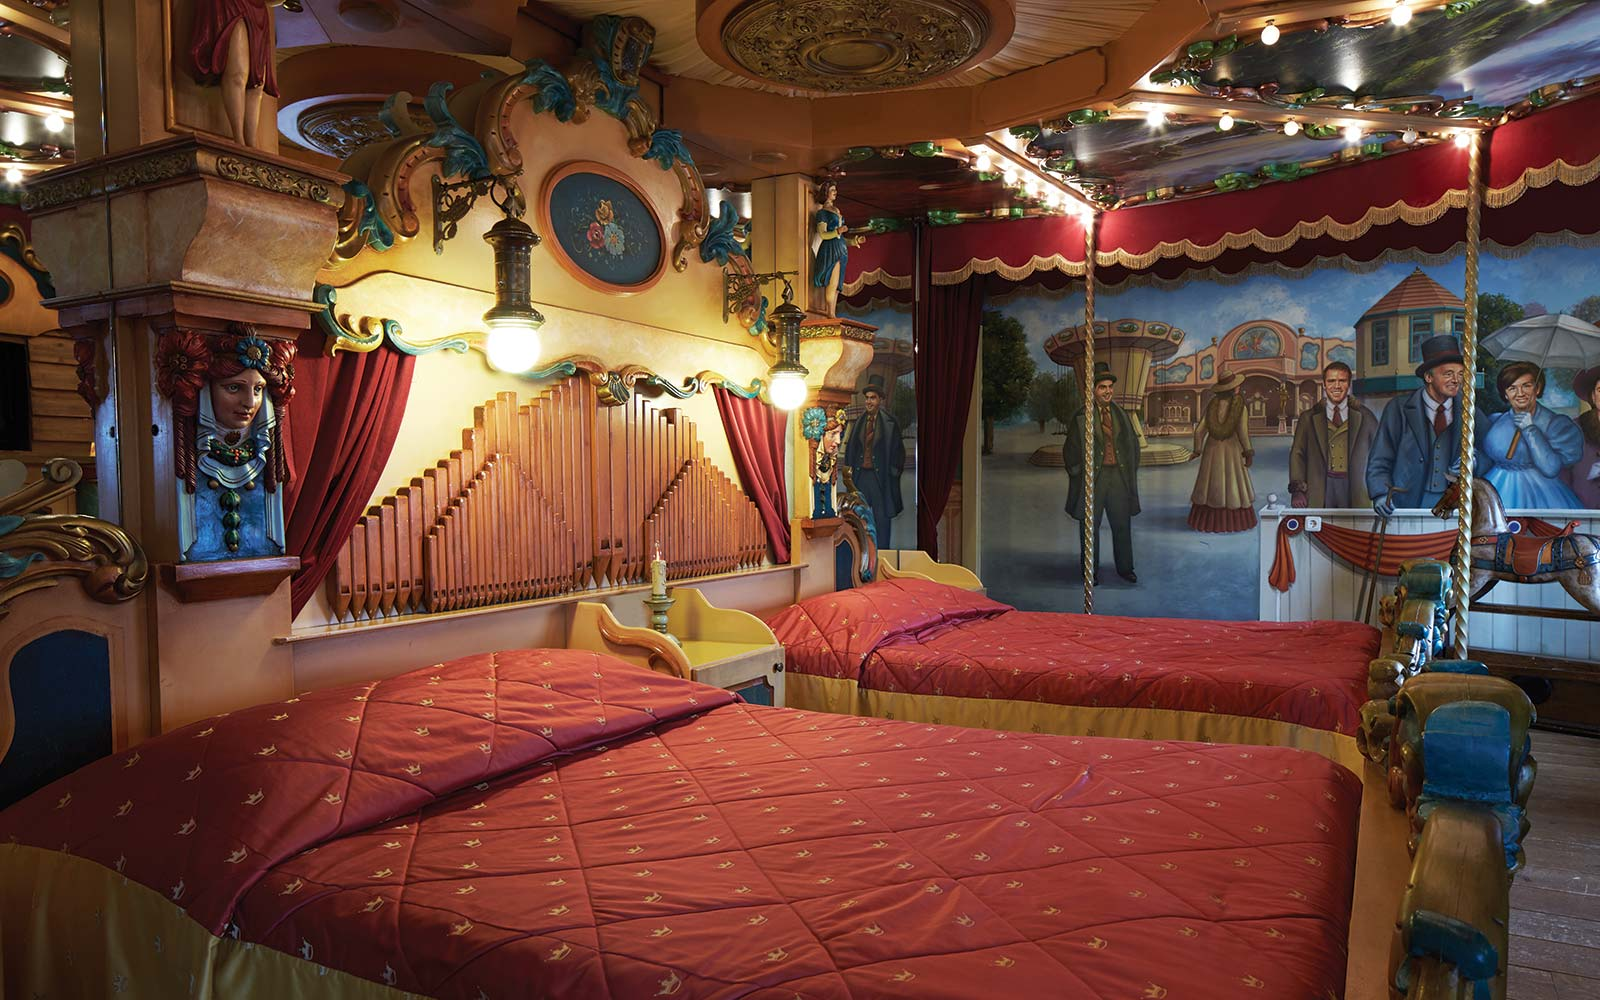 Carousel Suite at Efteling Hotel